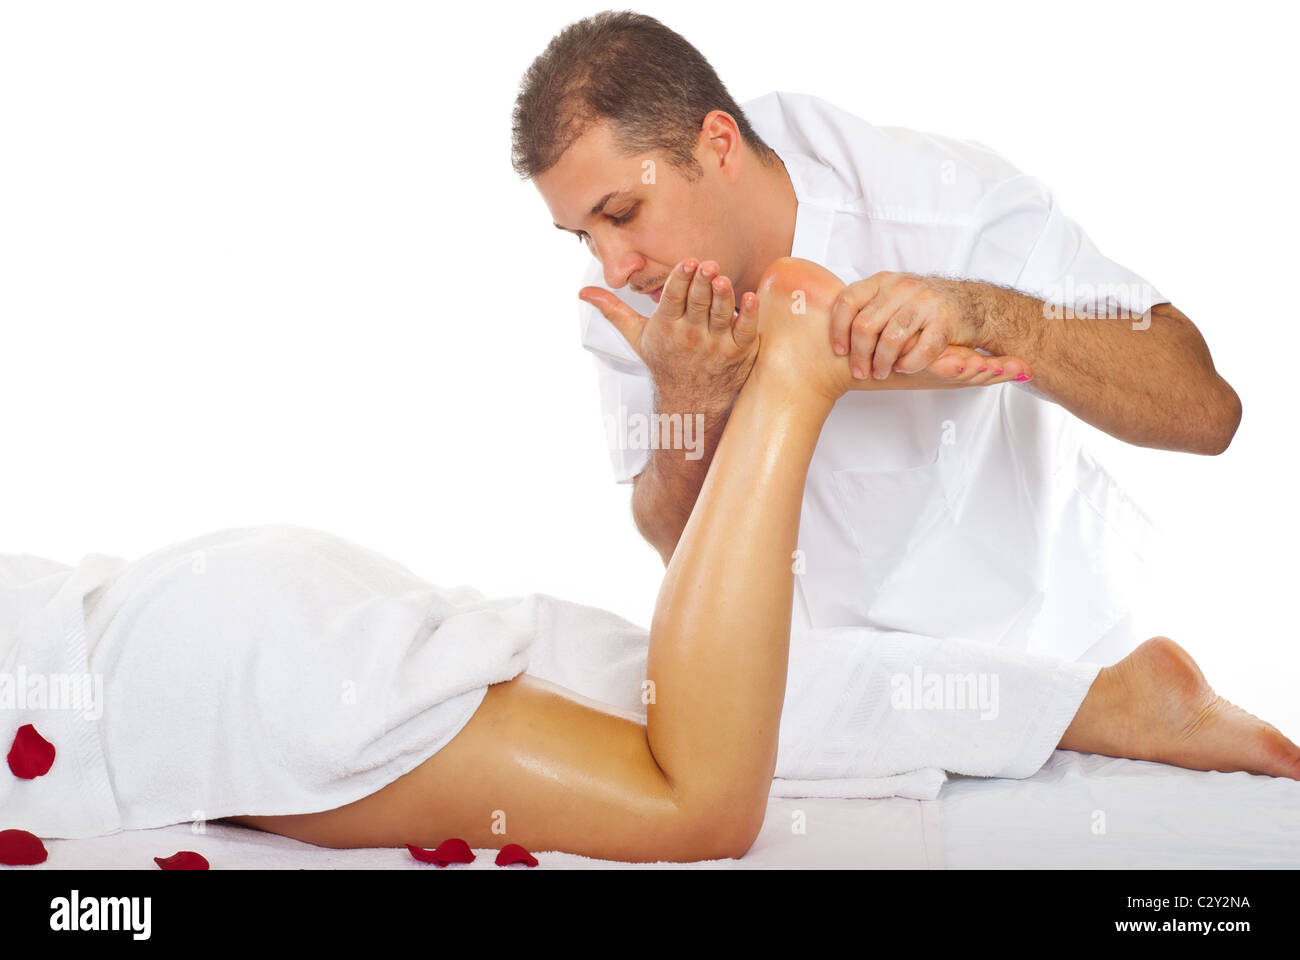 Masseur giving anti cellulite massage to a woman legs in a